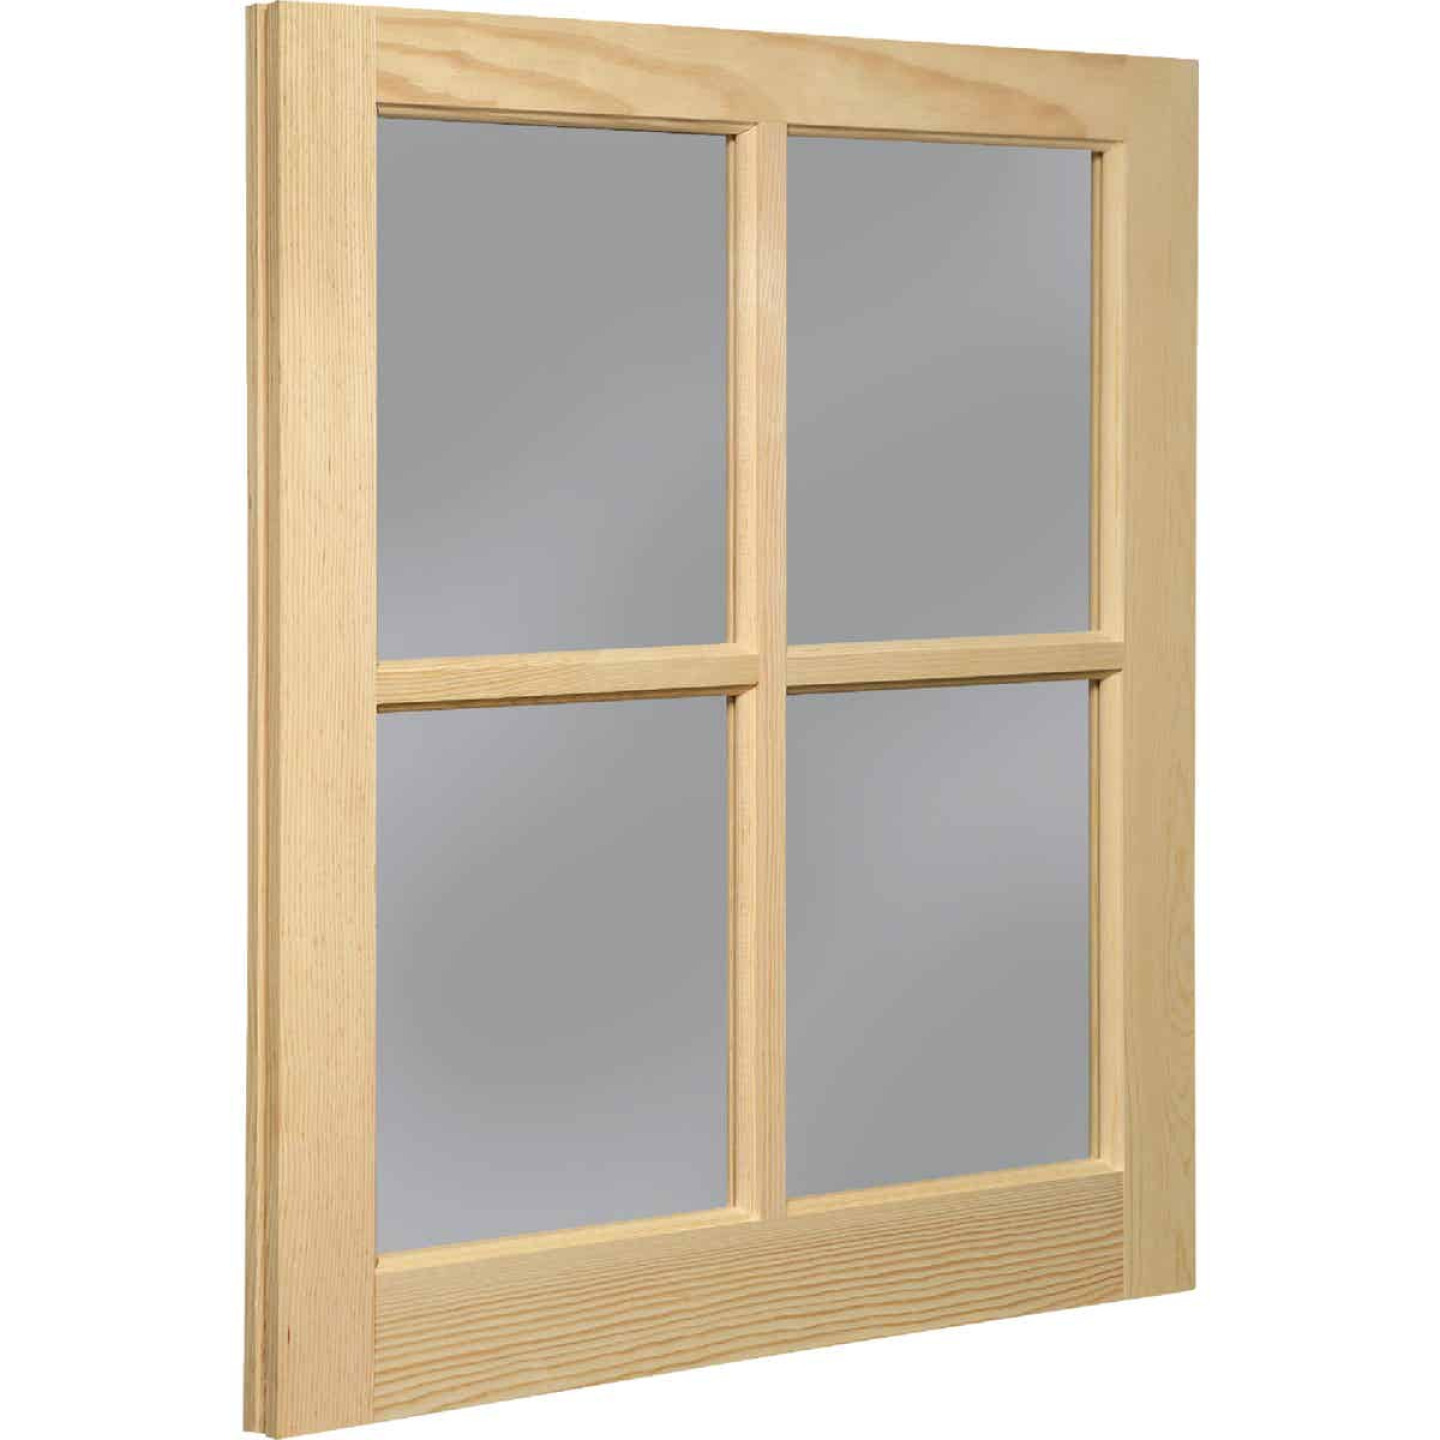 Northview Window 22 In. x 29 In. Wood 4-Lite Barn Sash Image 1